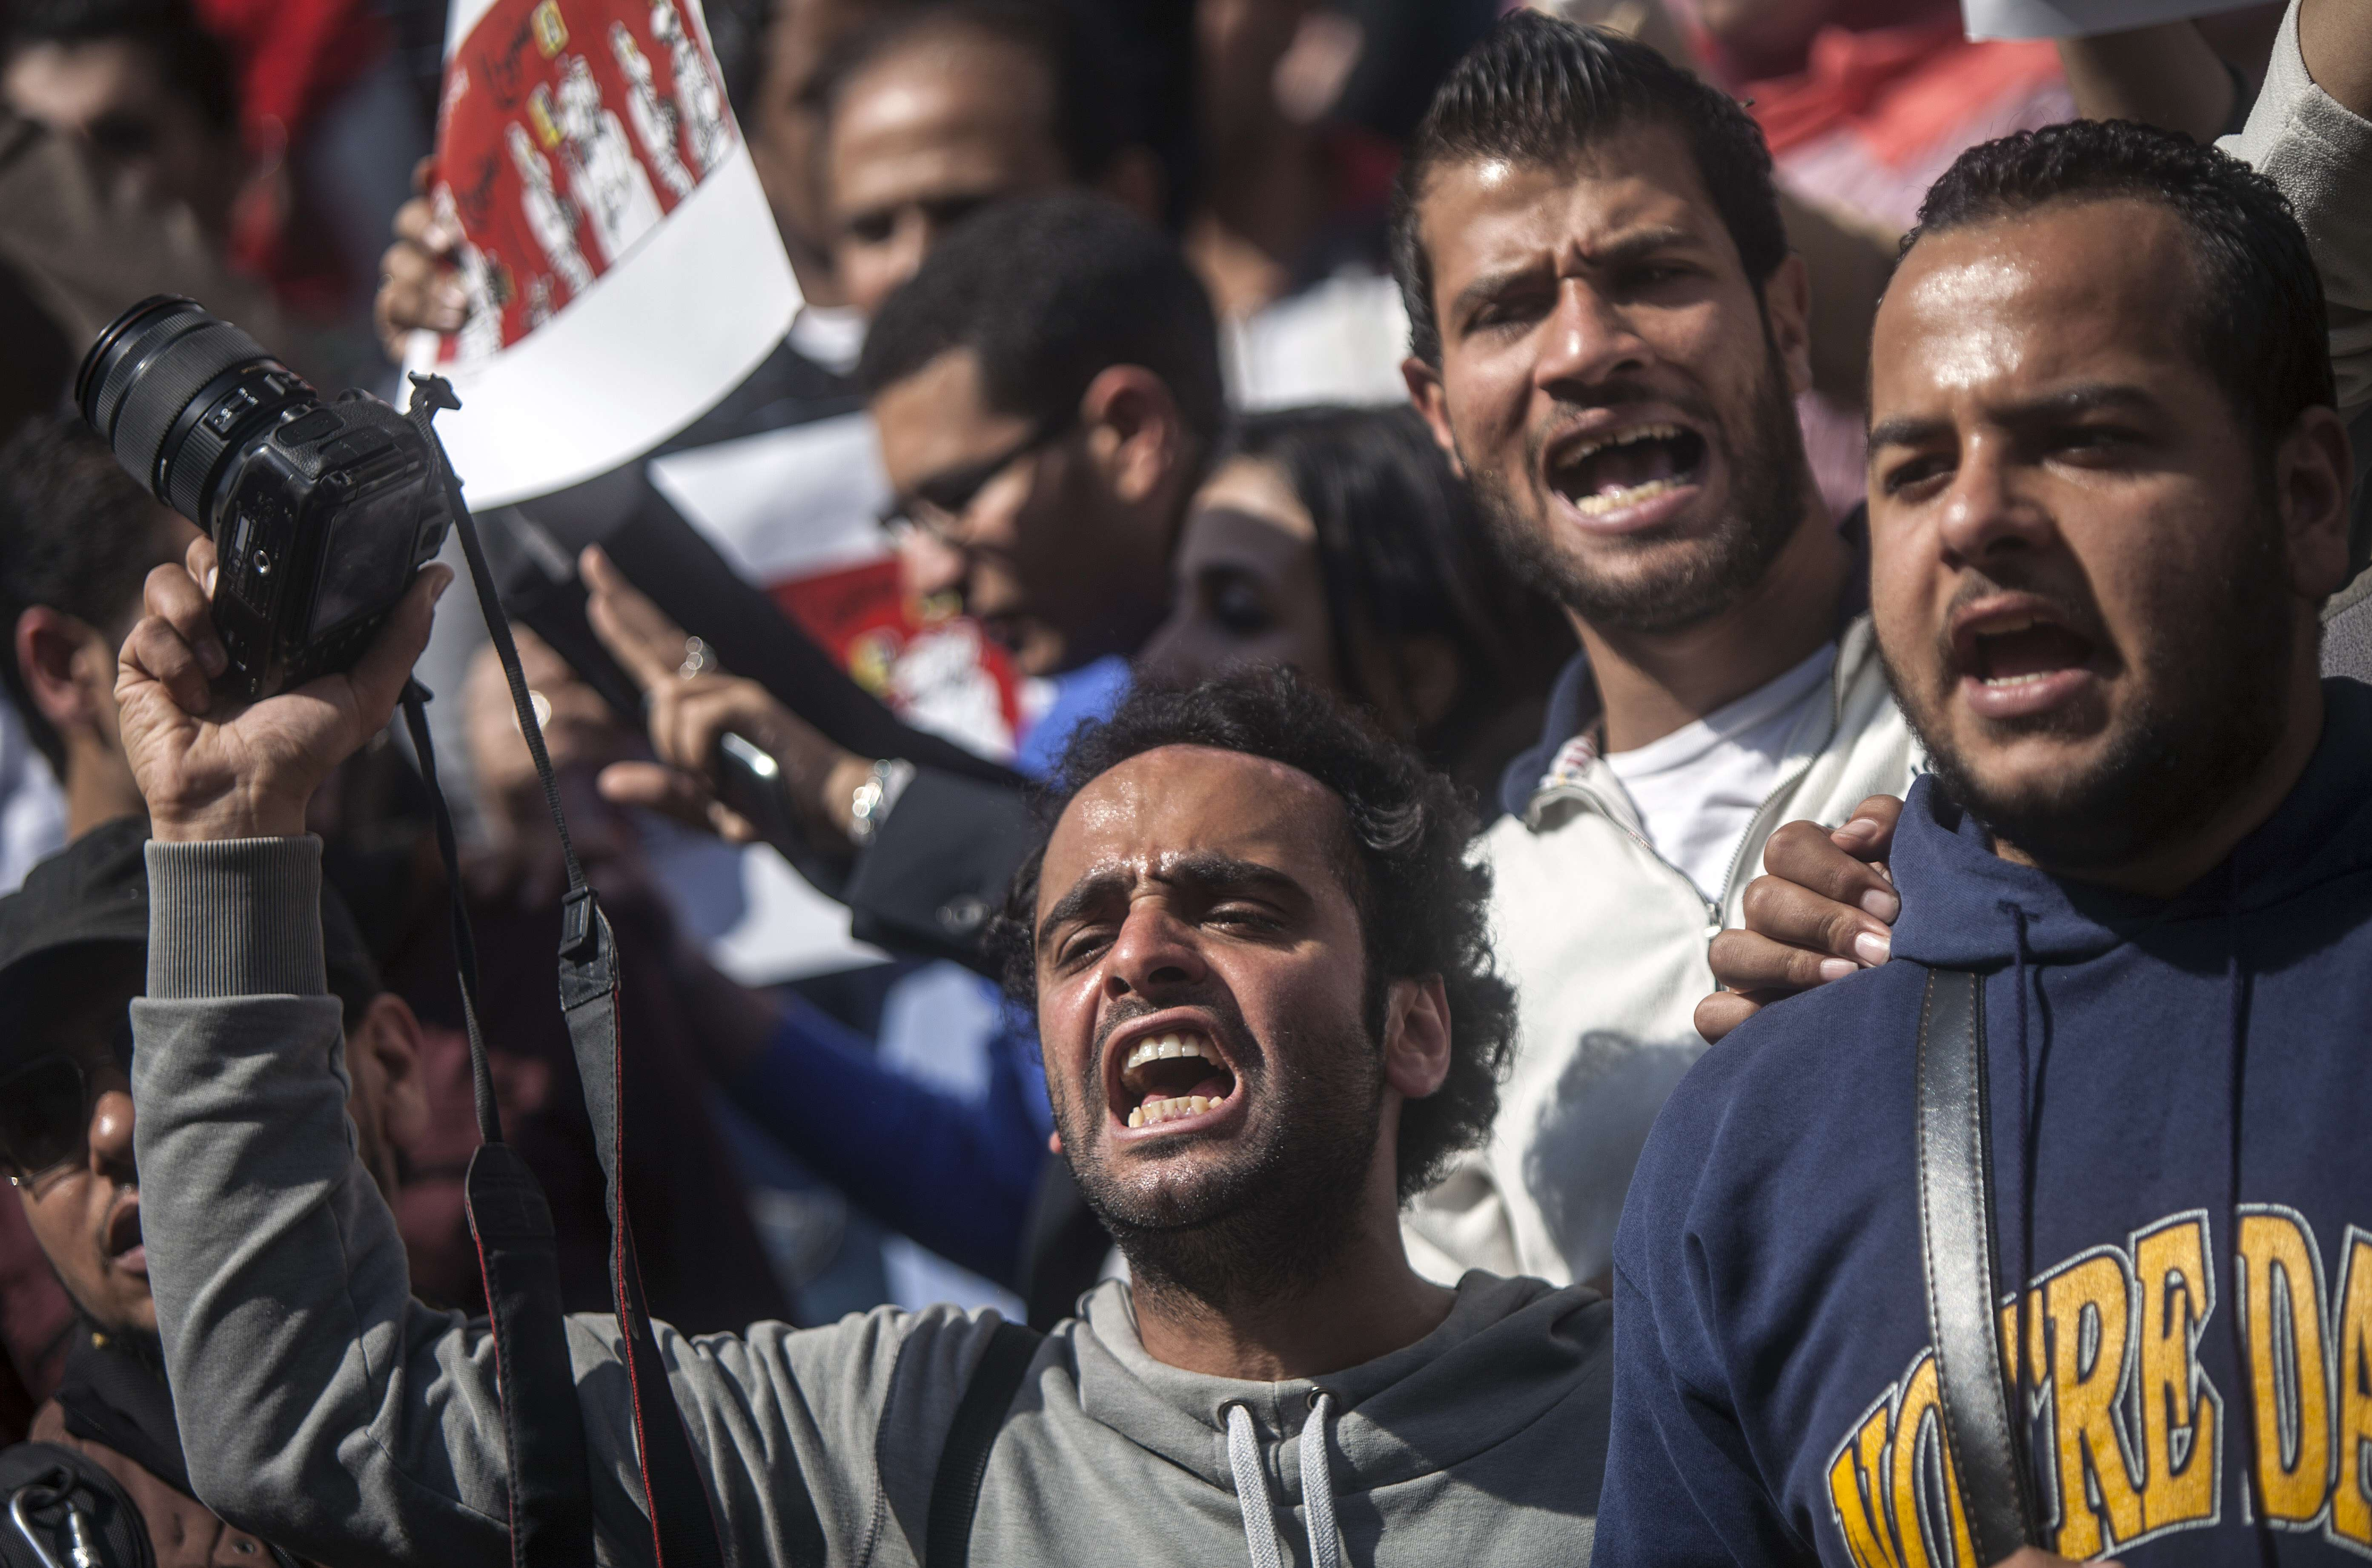 Journalists and photojournalists shout slogans as they demonstrate in front of the journalist's syndicate in Cairo against repeated attacks on members of the press in Egypt on April 4, 2014.  (AFP PHOTO / MAHMOUD KHALED)